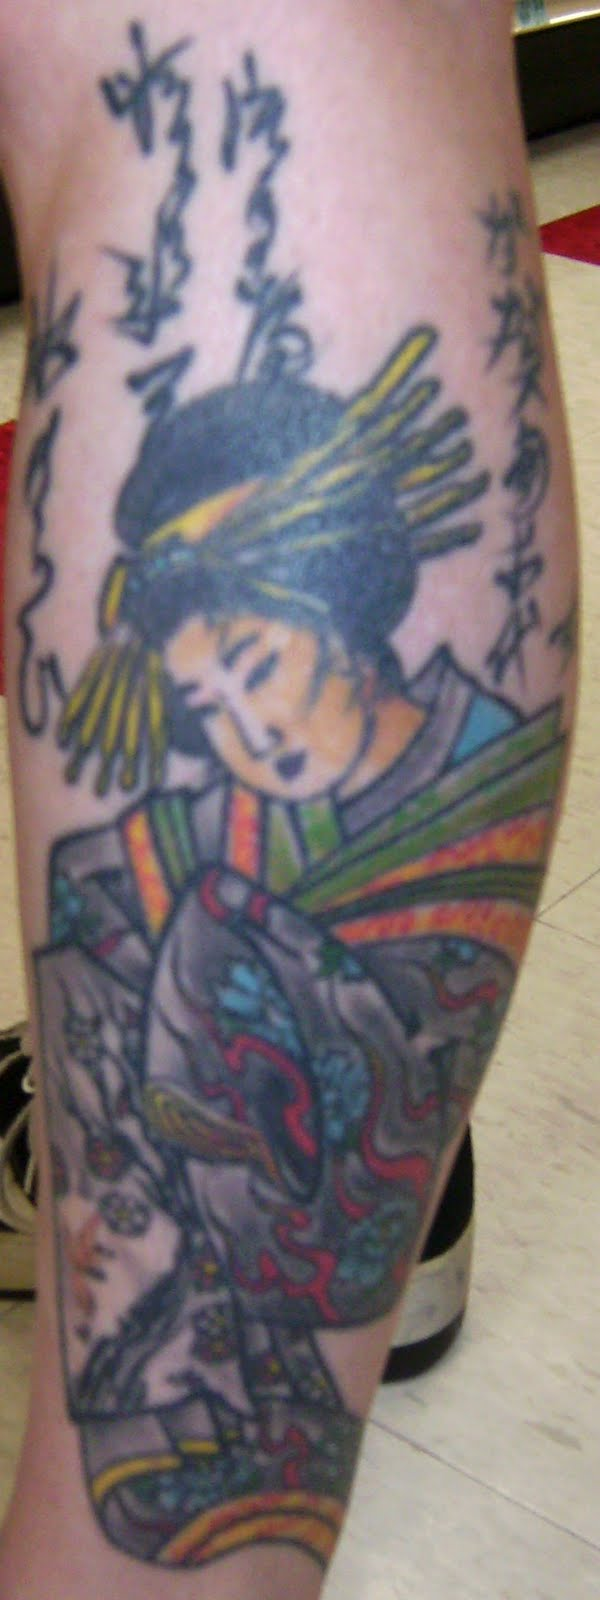 Tattoosday a tattoo blog mike norma share some of for Best tattoo artist in fort worth